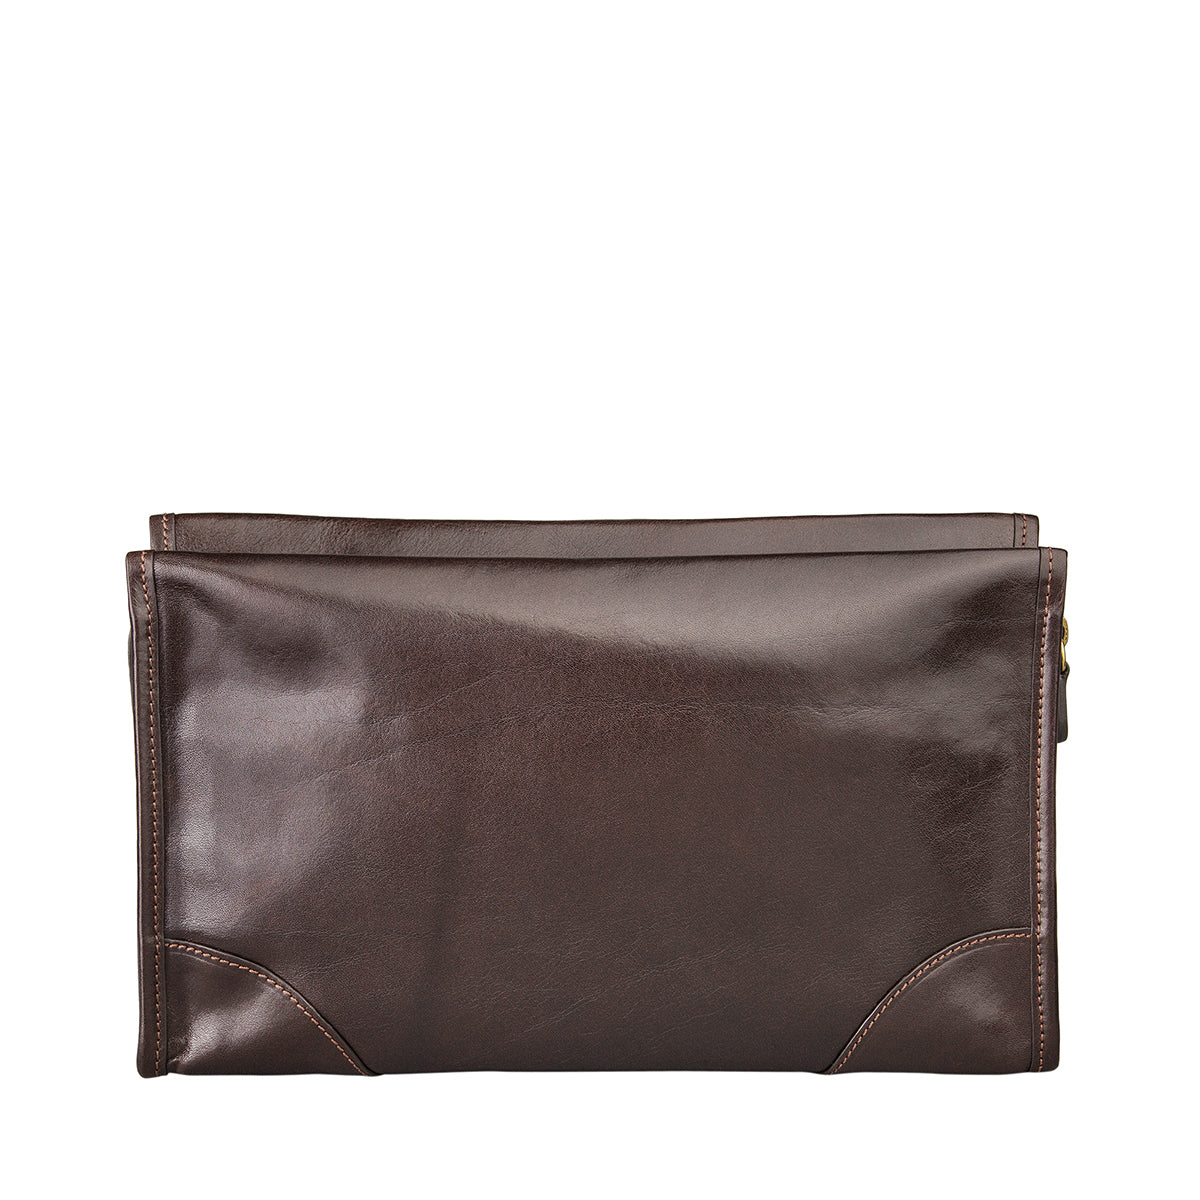 Image 4 of the 'Tanta' Brown Veg-Tanned Leather Wash Bag